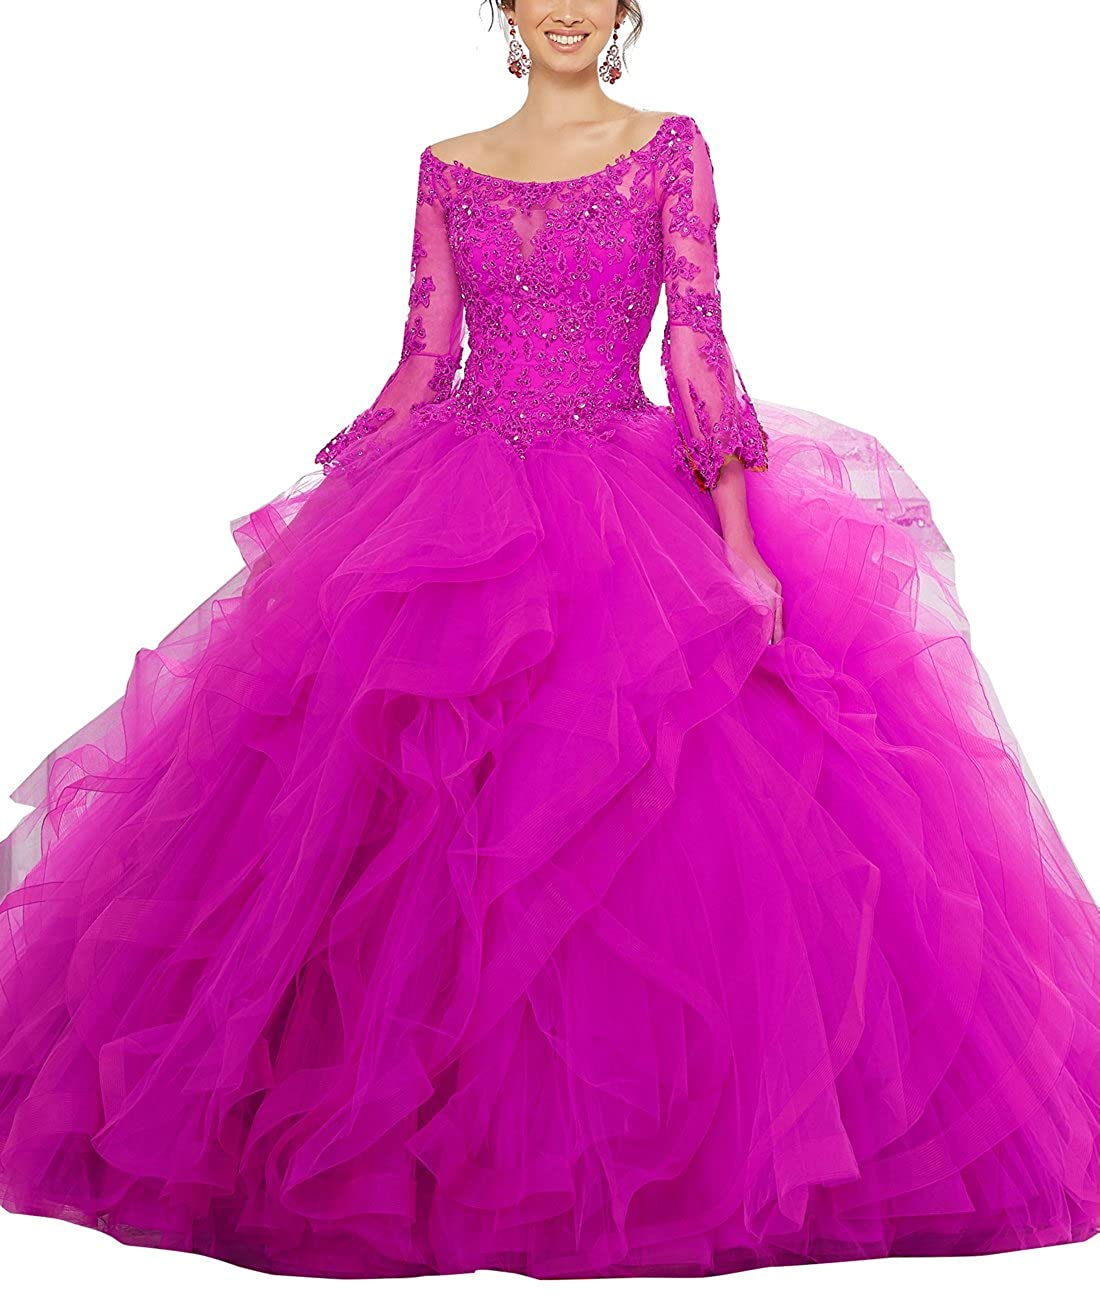 Fuchsia Now and Forever Women's Long Sleeve Beaded lace Quinceanera Dresses Ruffles Ball Gown Prom Gowns